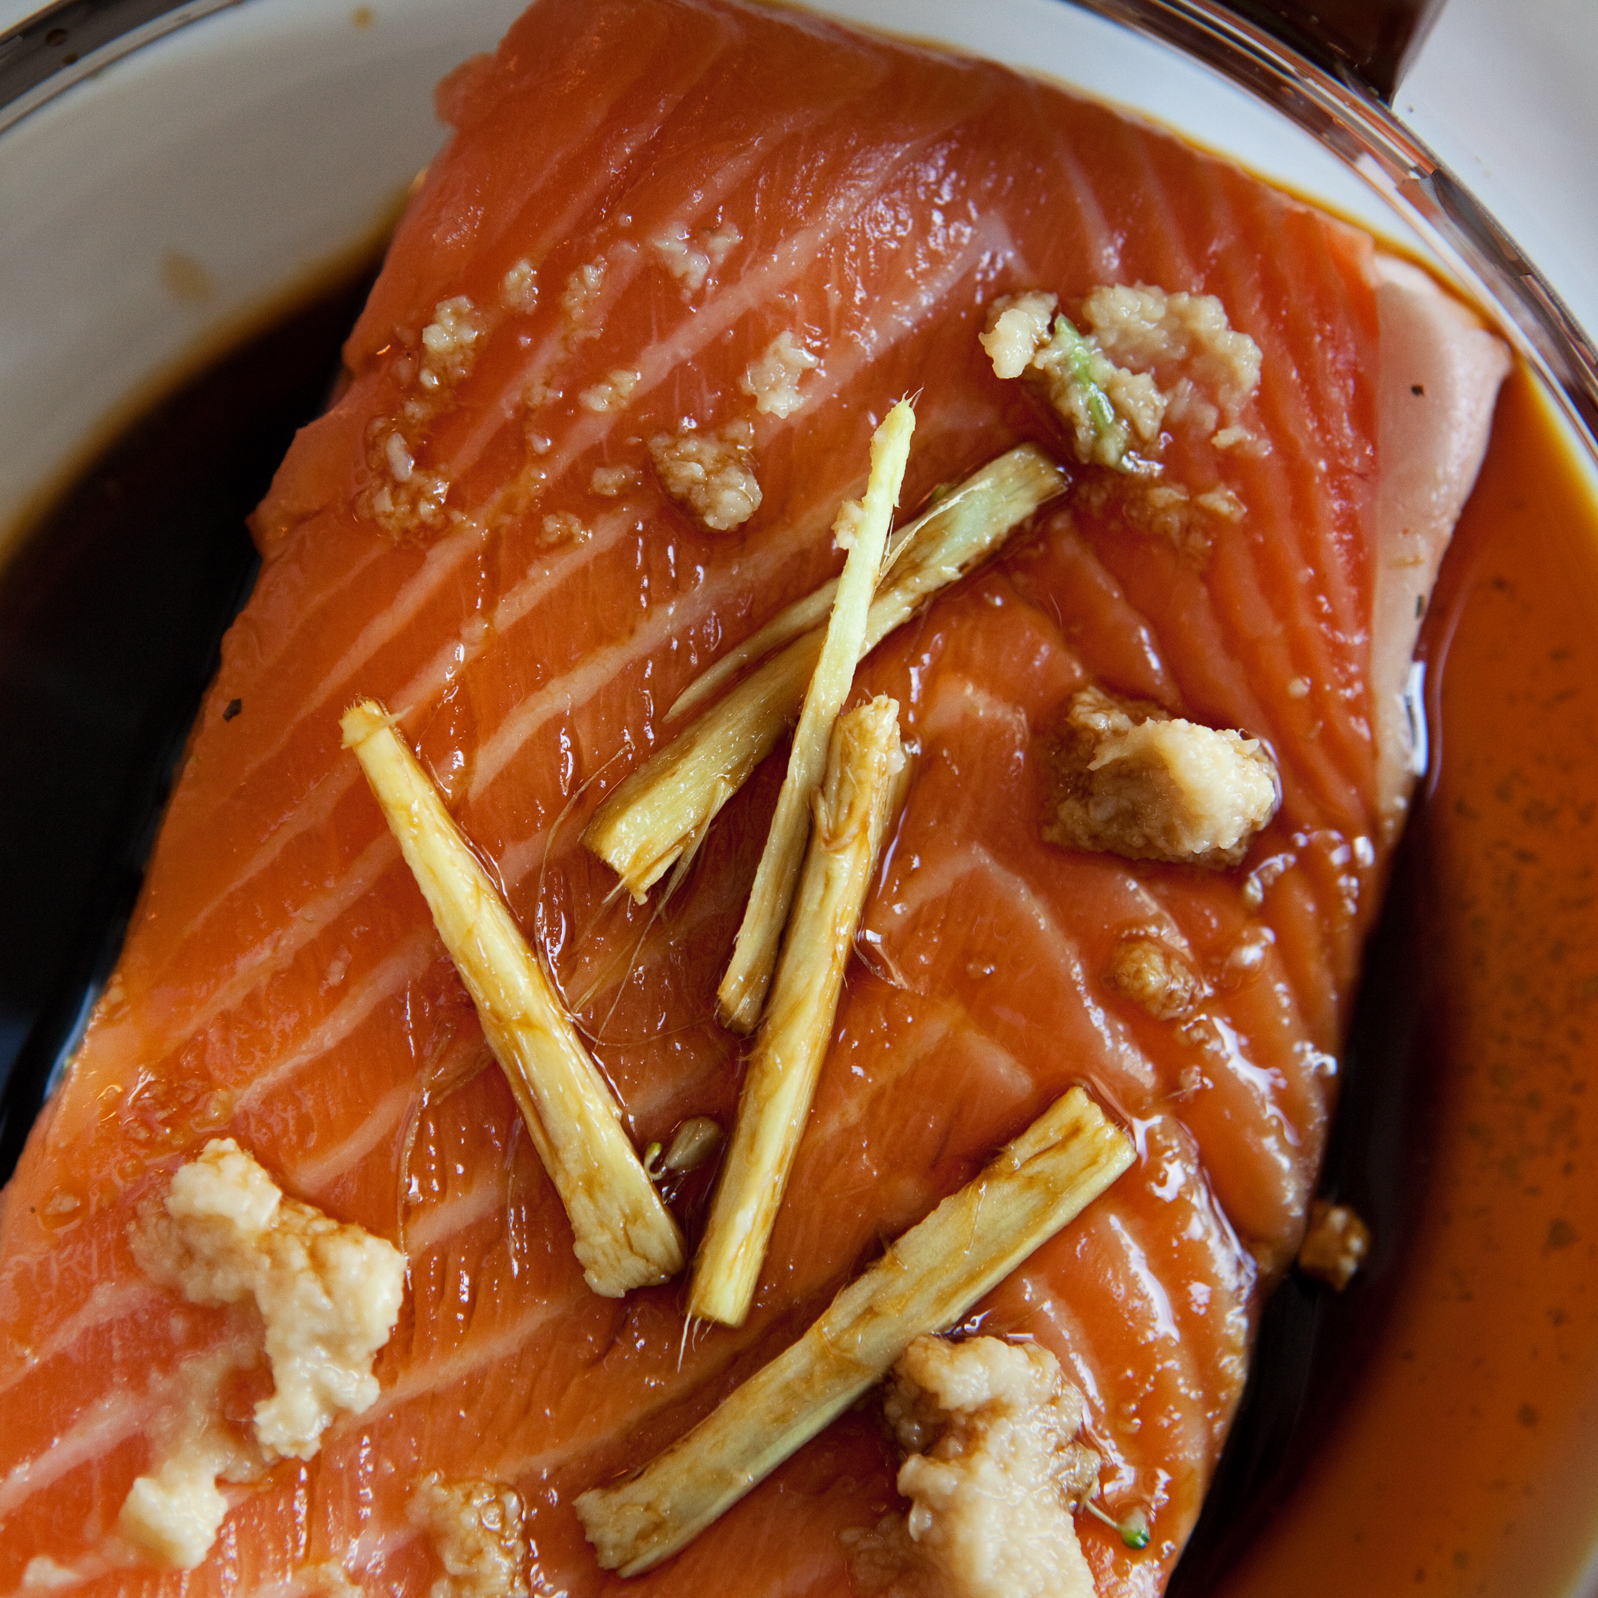 A slice of salmon with ginger, garlic and soy sauce sits in the coffee maker's carafe ready for poaching.